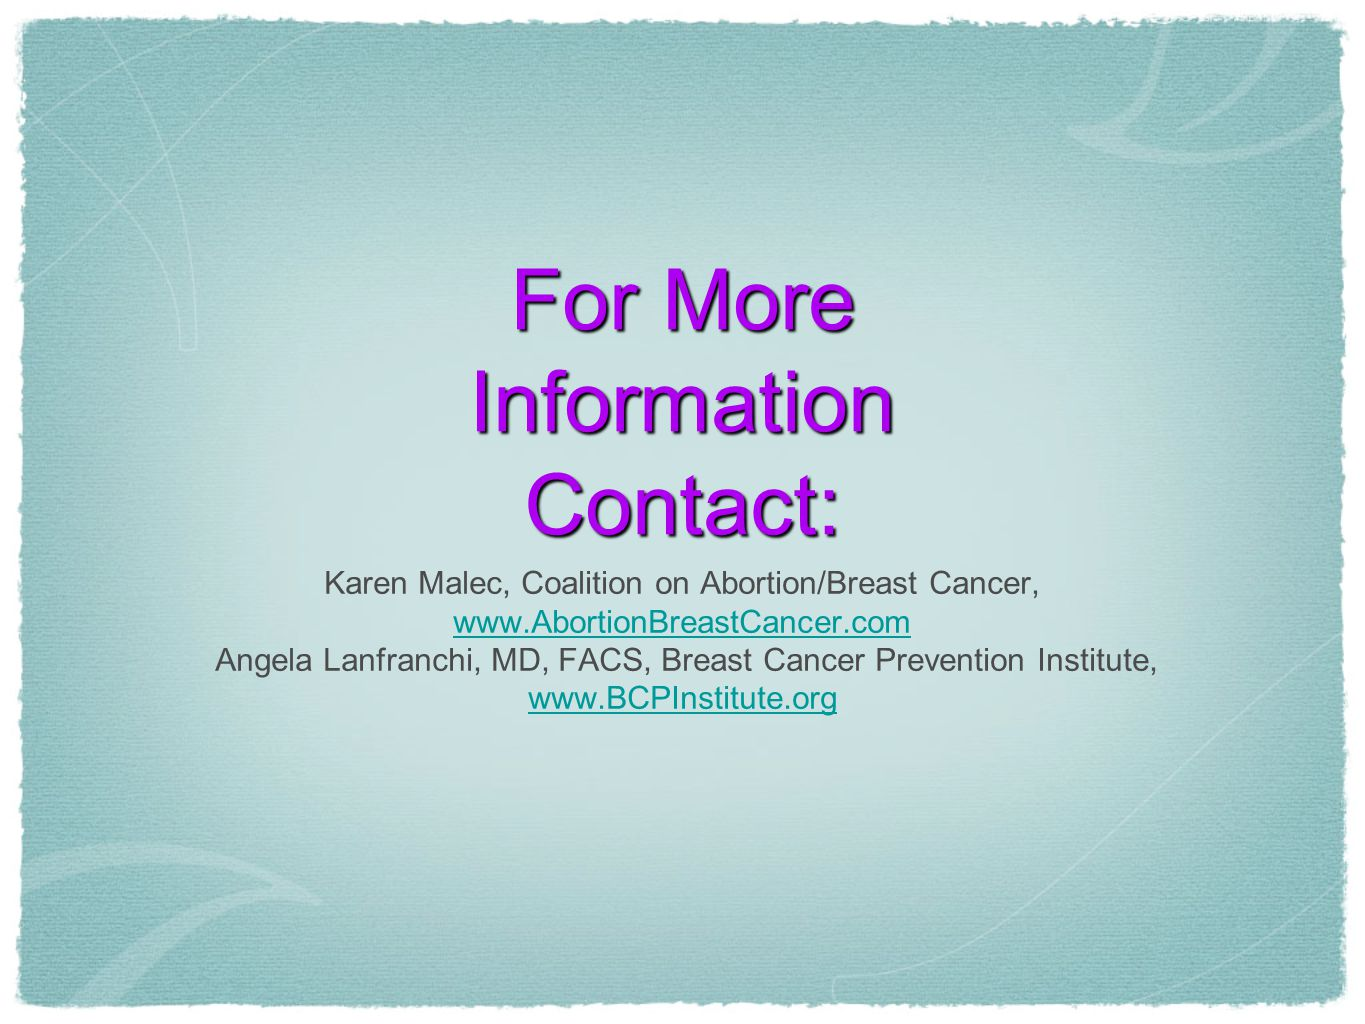 For More Information Contact: Karen Malec, Coalition on Abortion/Breast Cancer, www.AbortionBreastCancer.com Angela Lanfranchi, MD, FACS, Breast Cancer Prevention Institute, www.BCPInstitute.org www.BCPInstitute.org